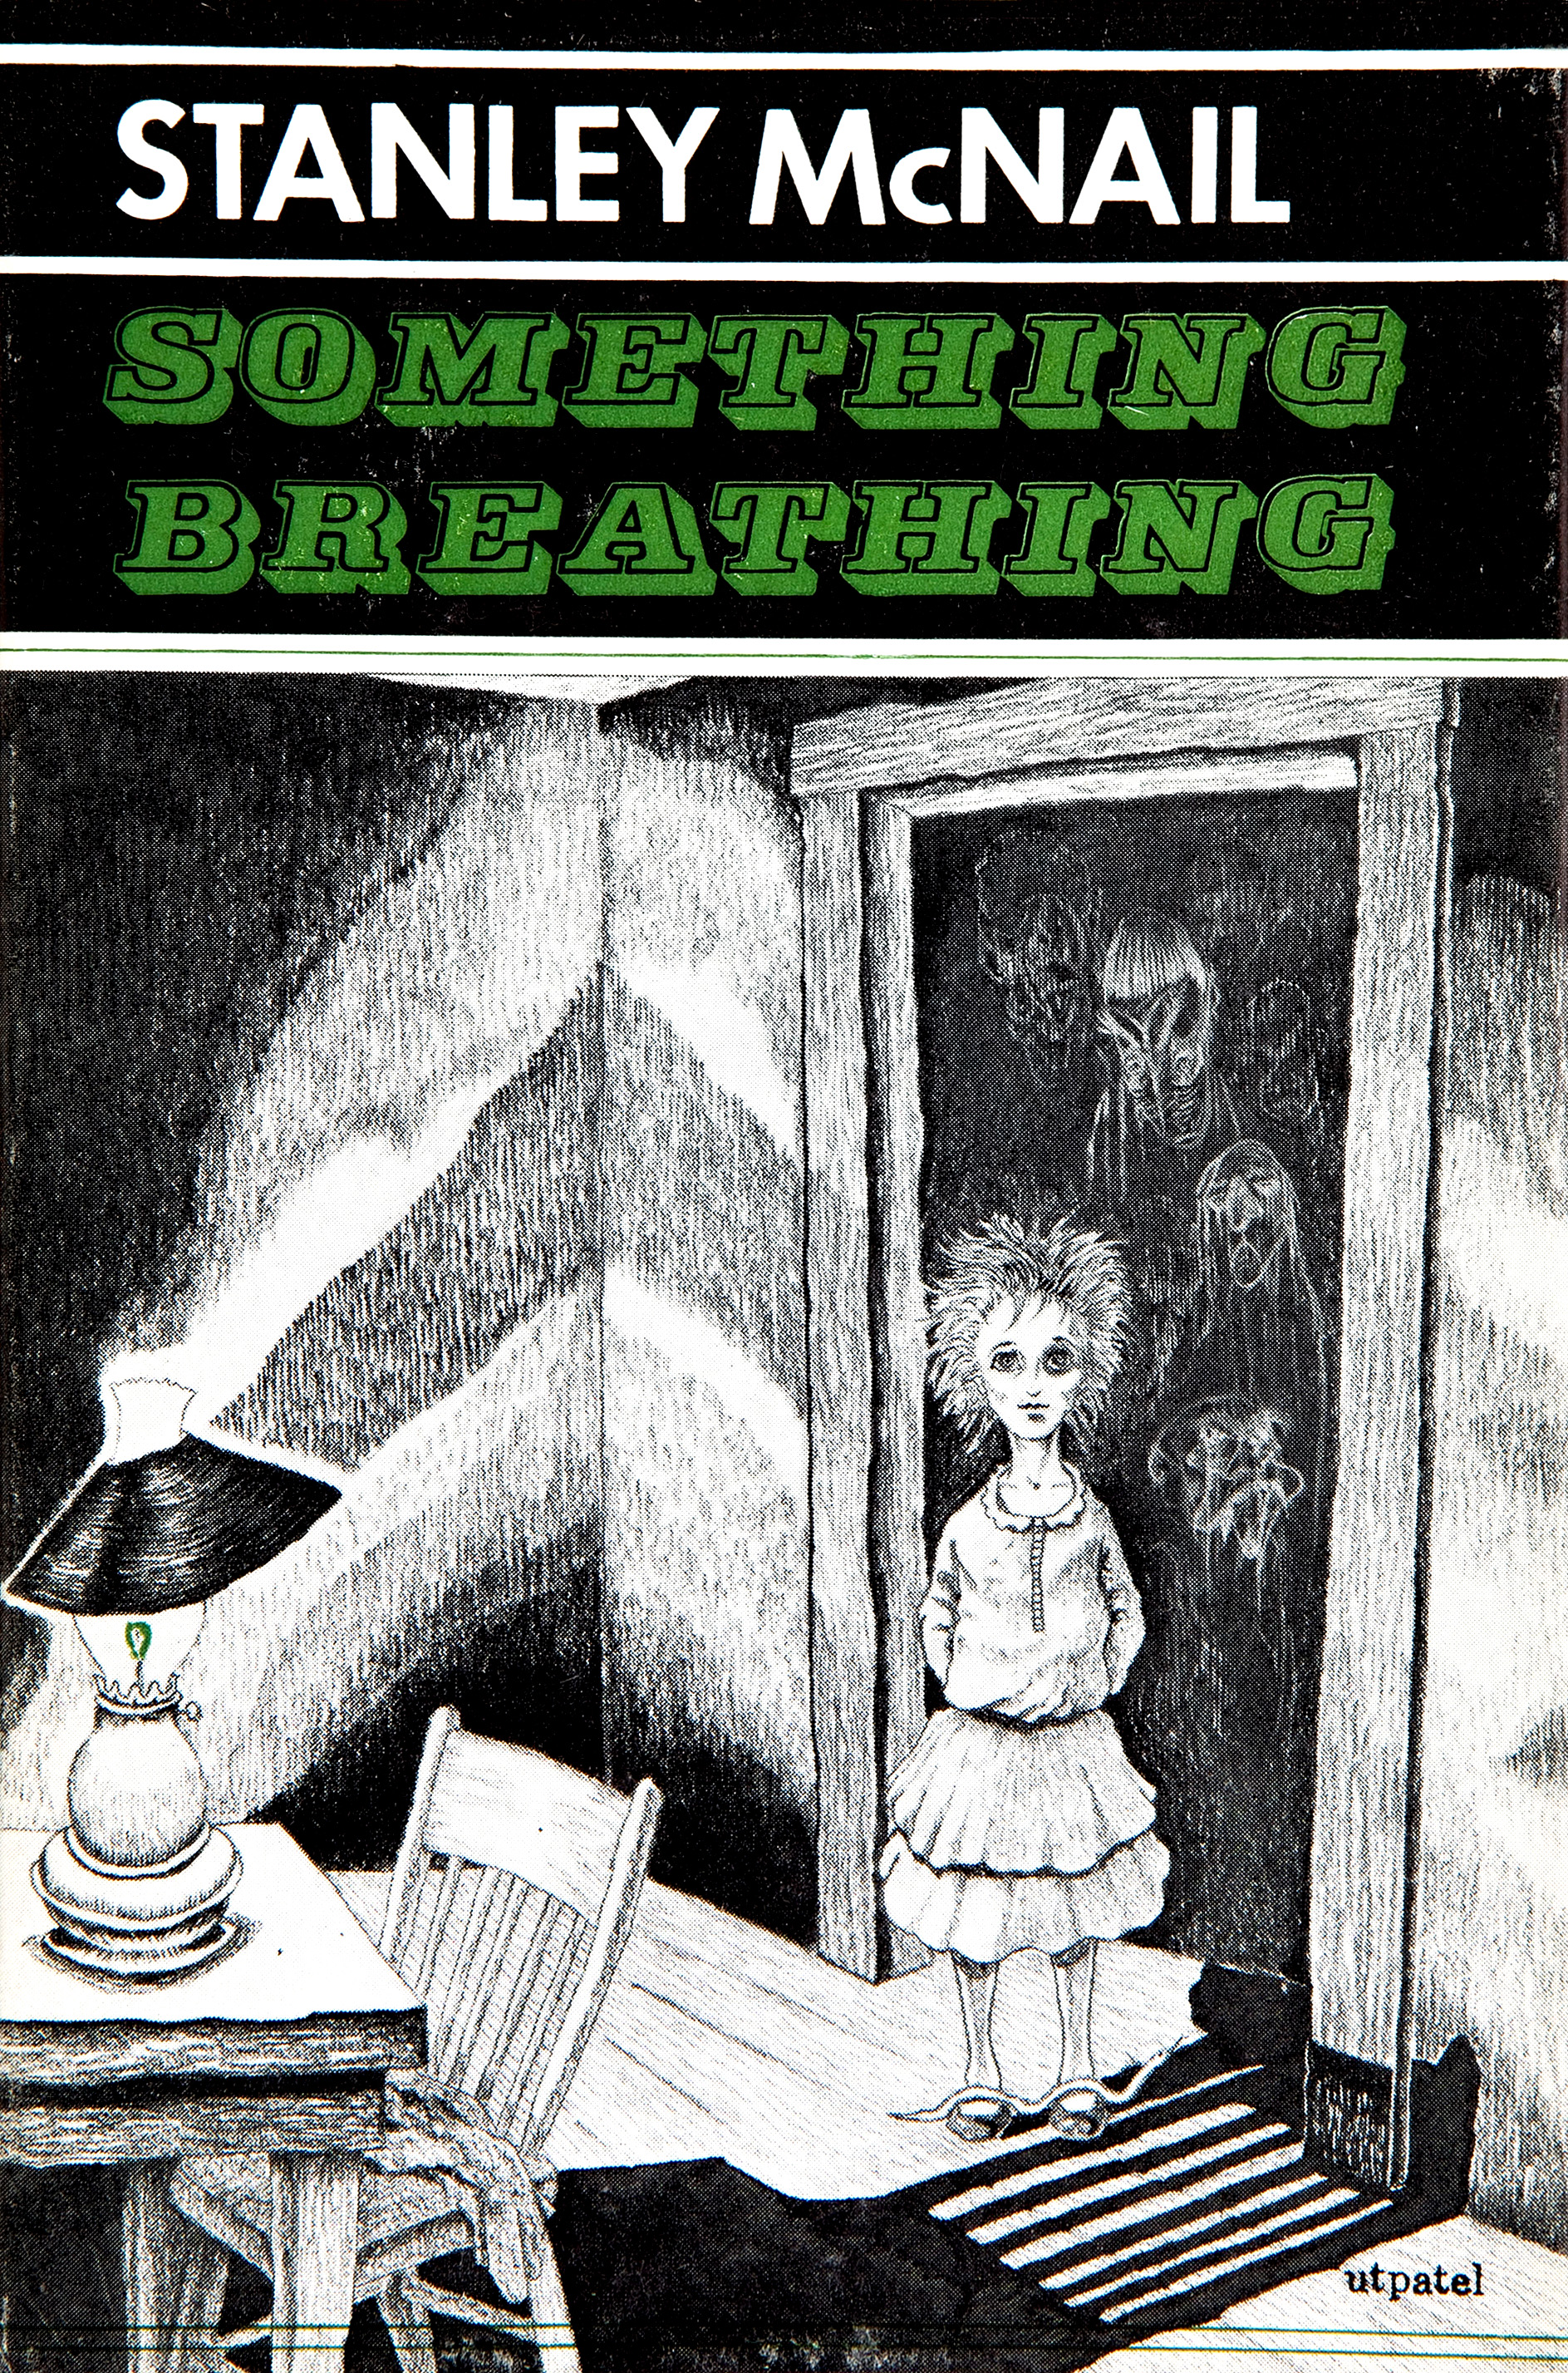 Frank Utpatel cover for Stanley McNail's Something Breathing. Arkham House, 1965